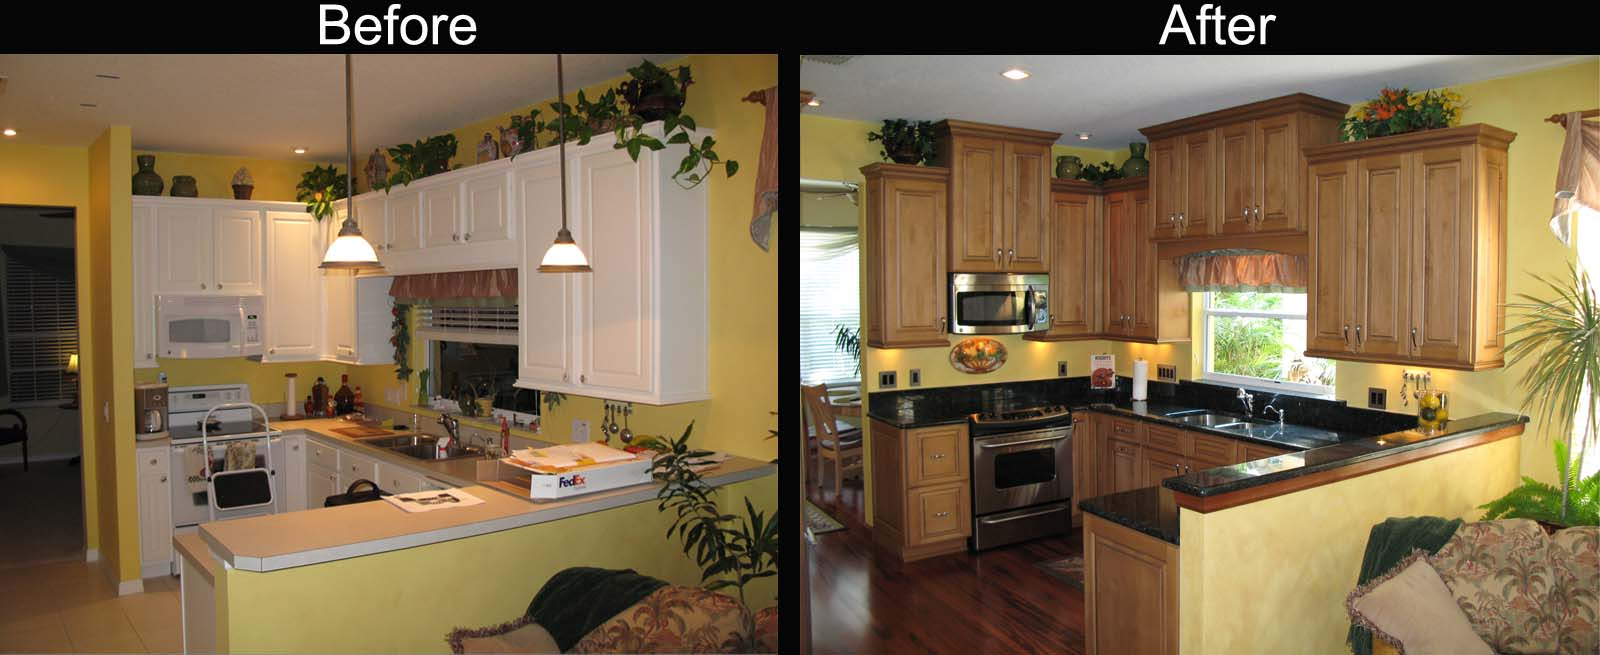 Kitchen decor kitchen remodel before and after for How to remodel a kitchen